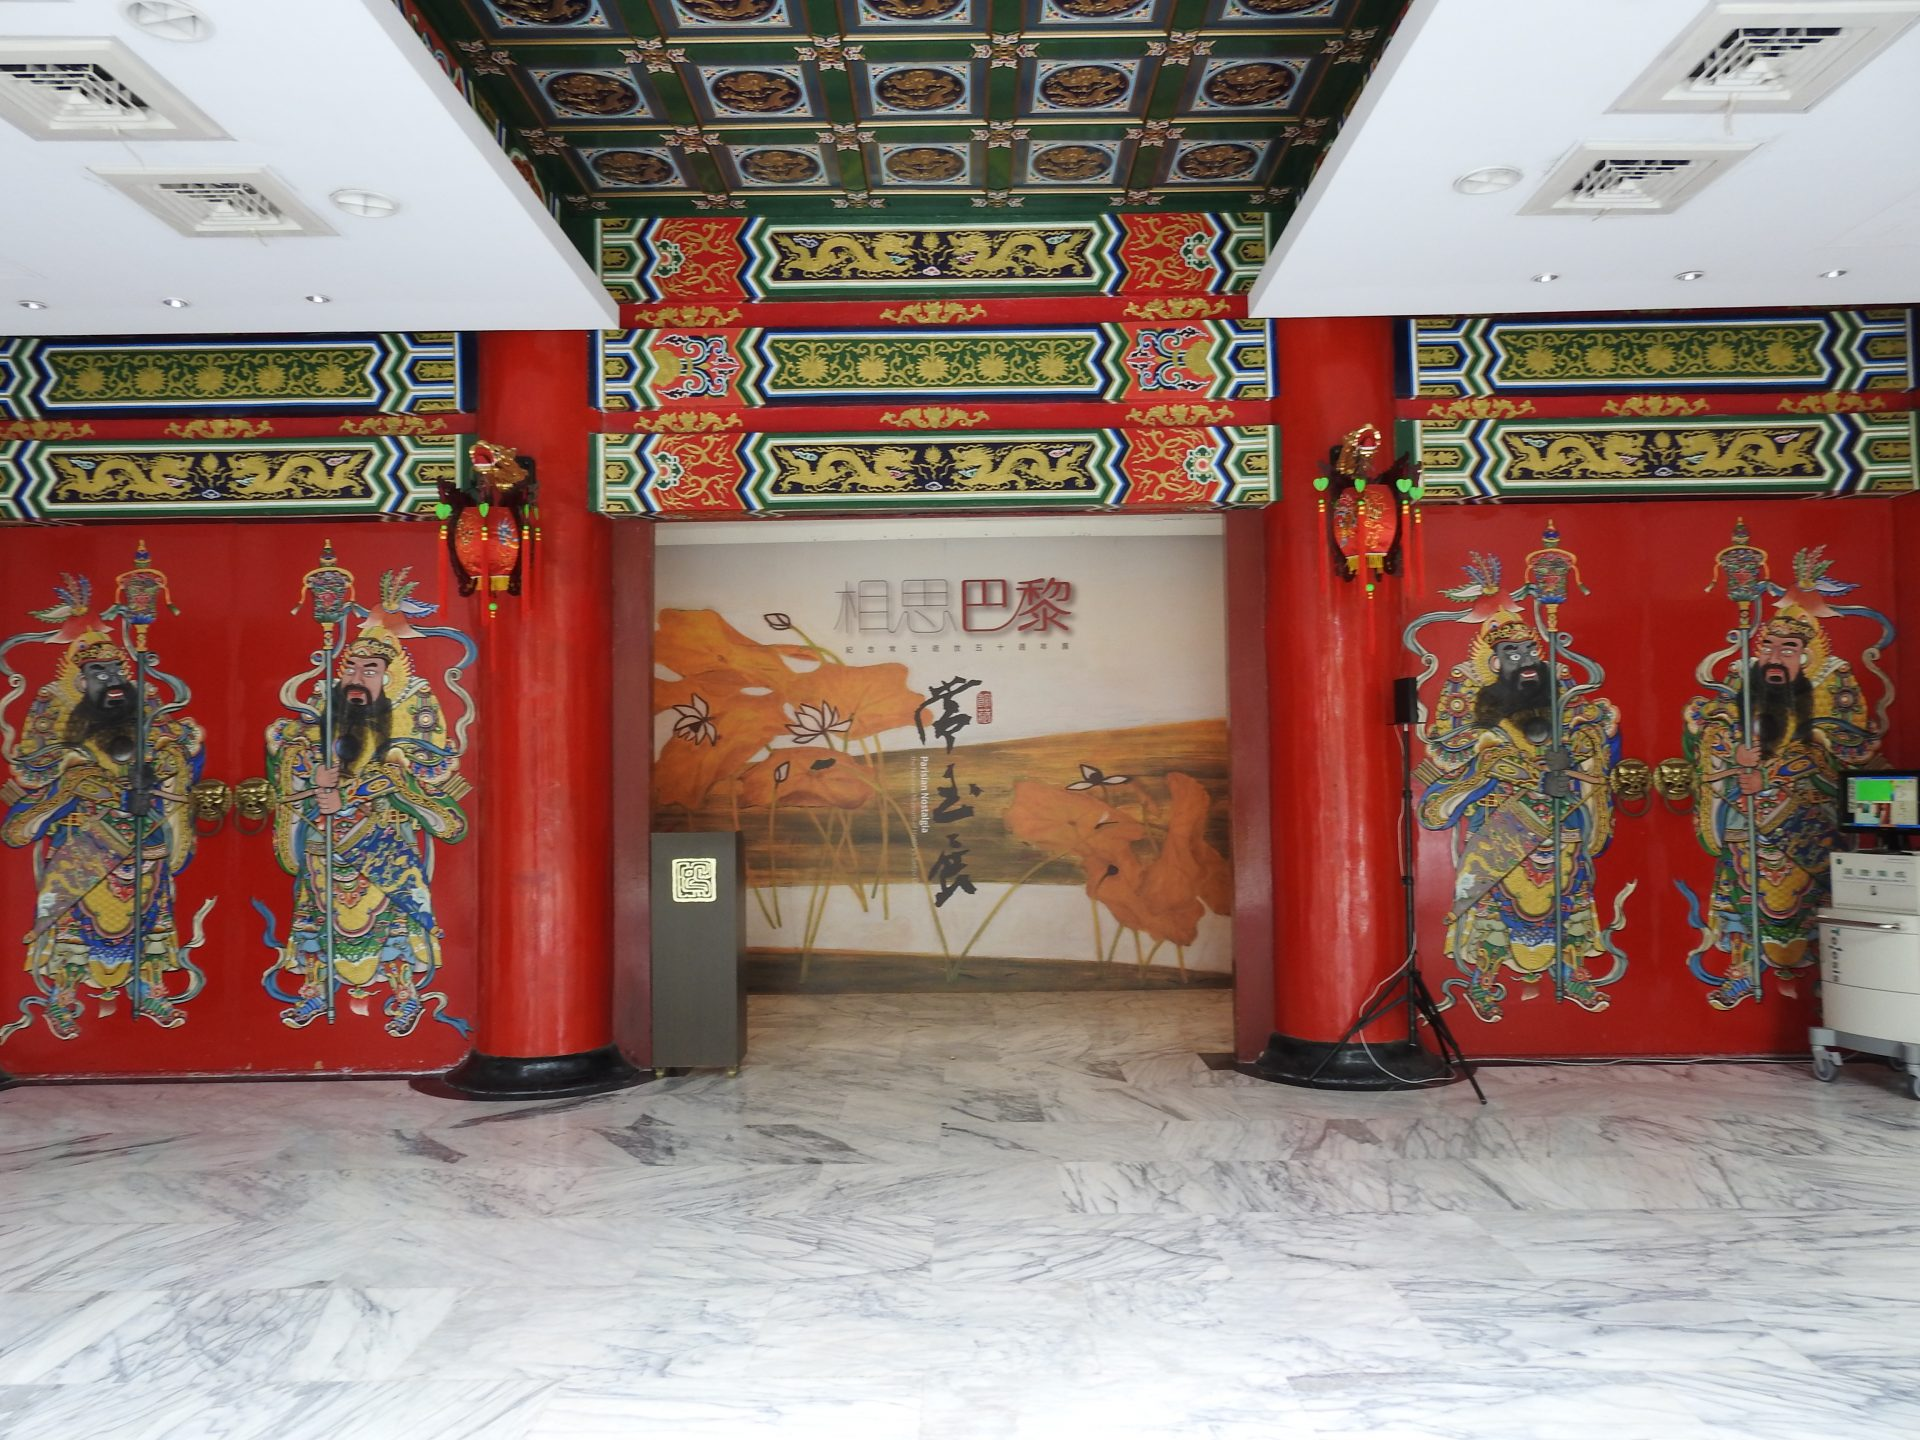 The front entrance of the National Museum of History (Image: Billy Shyu/ Vision Times)